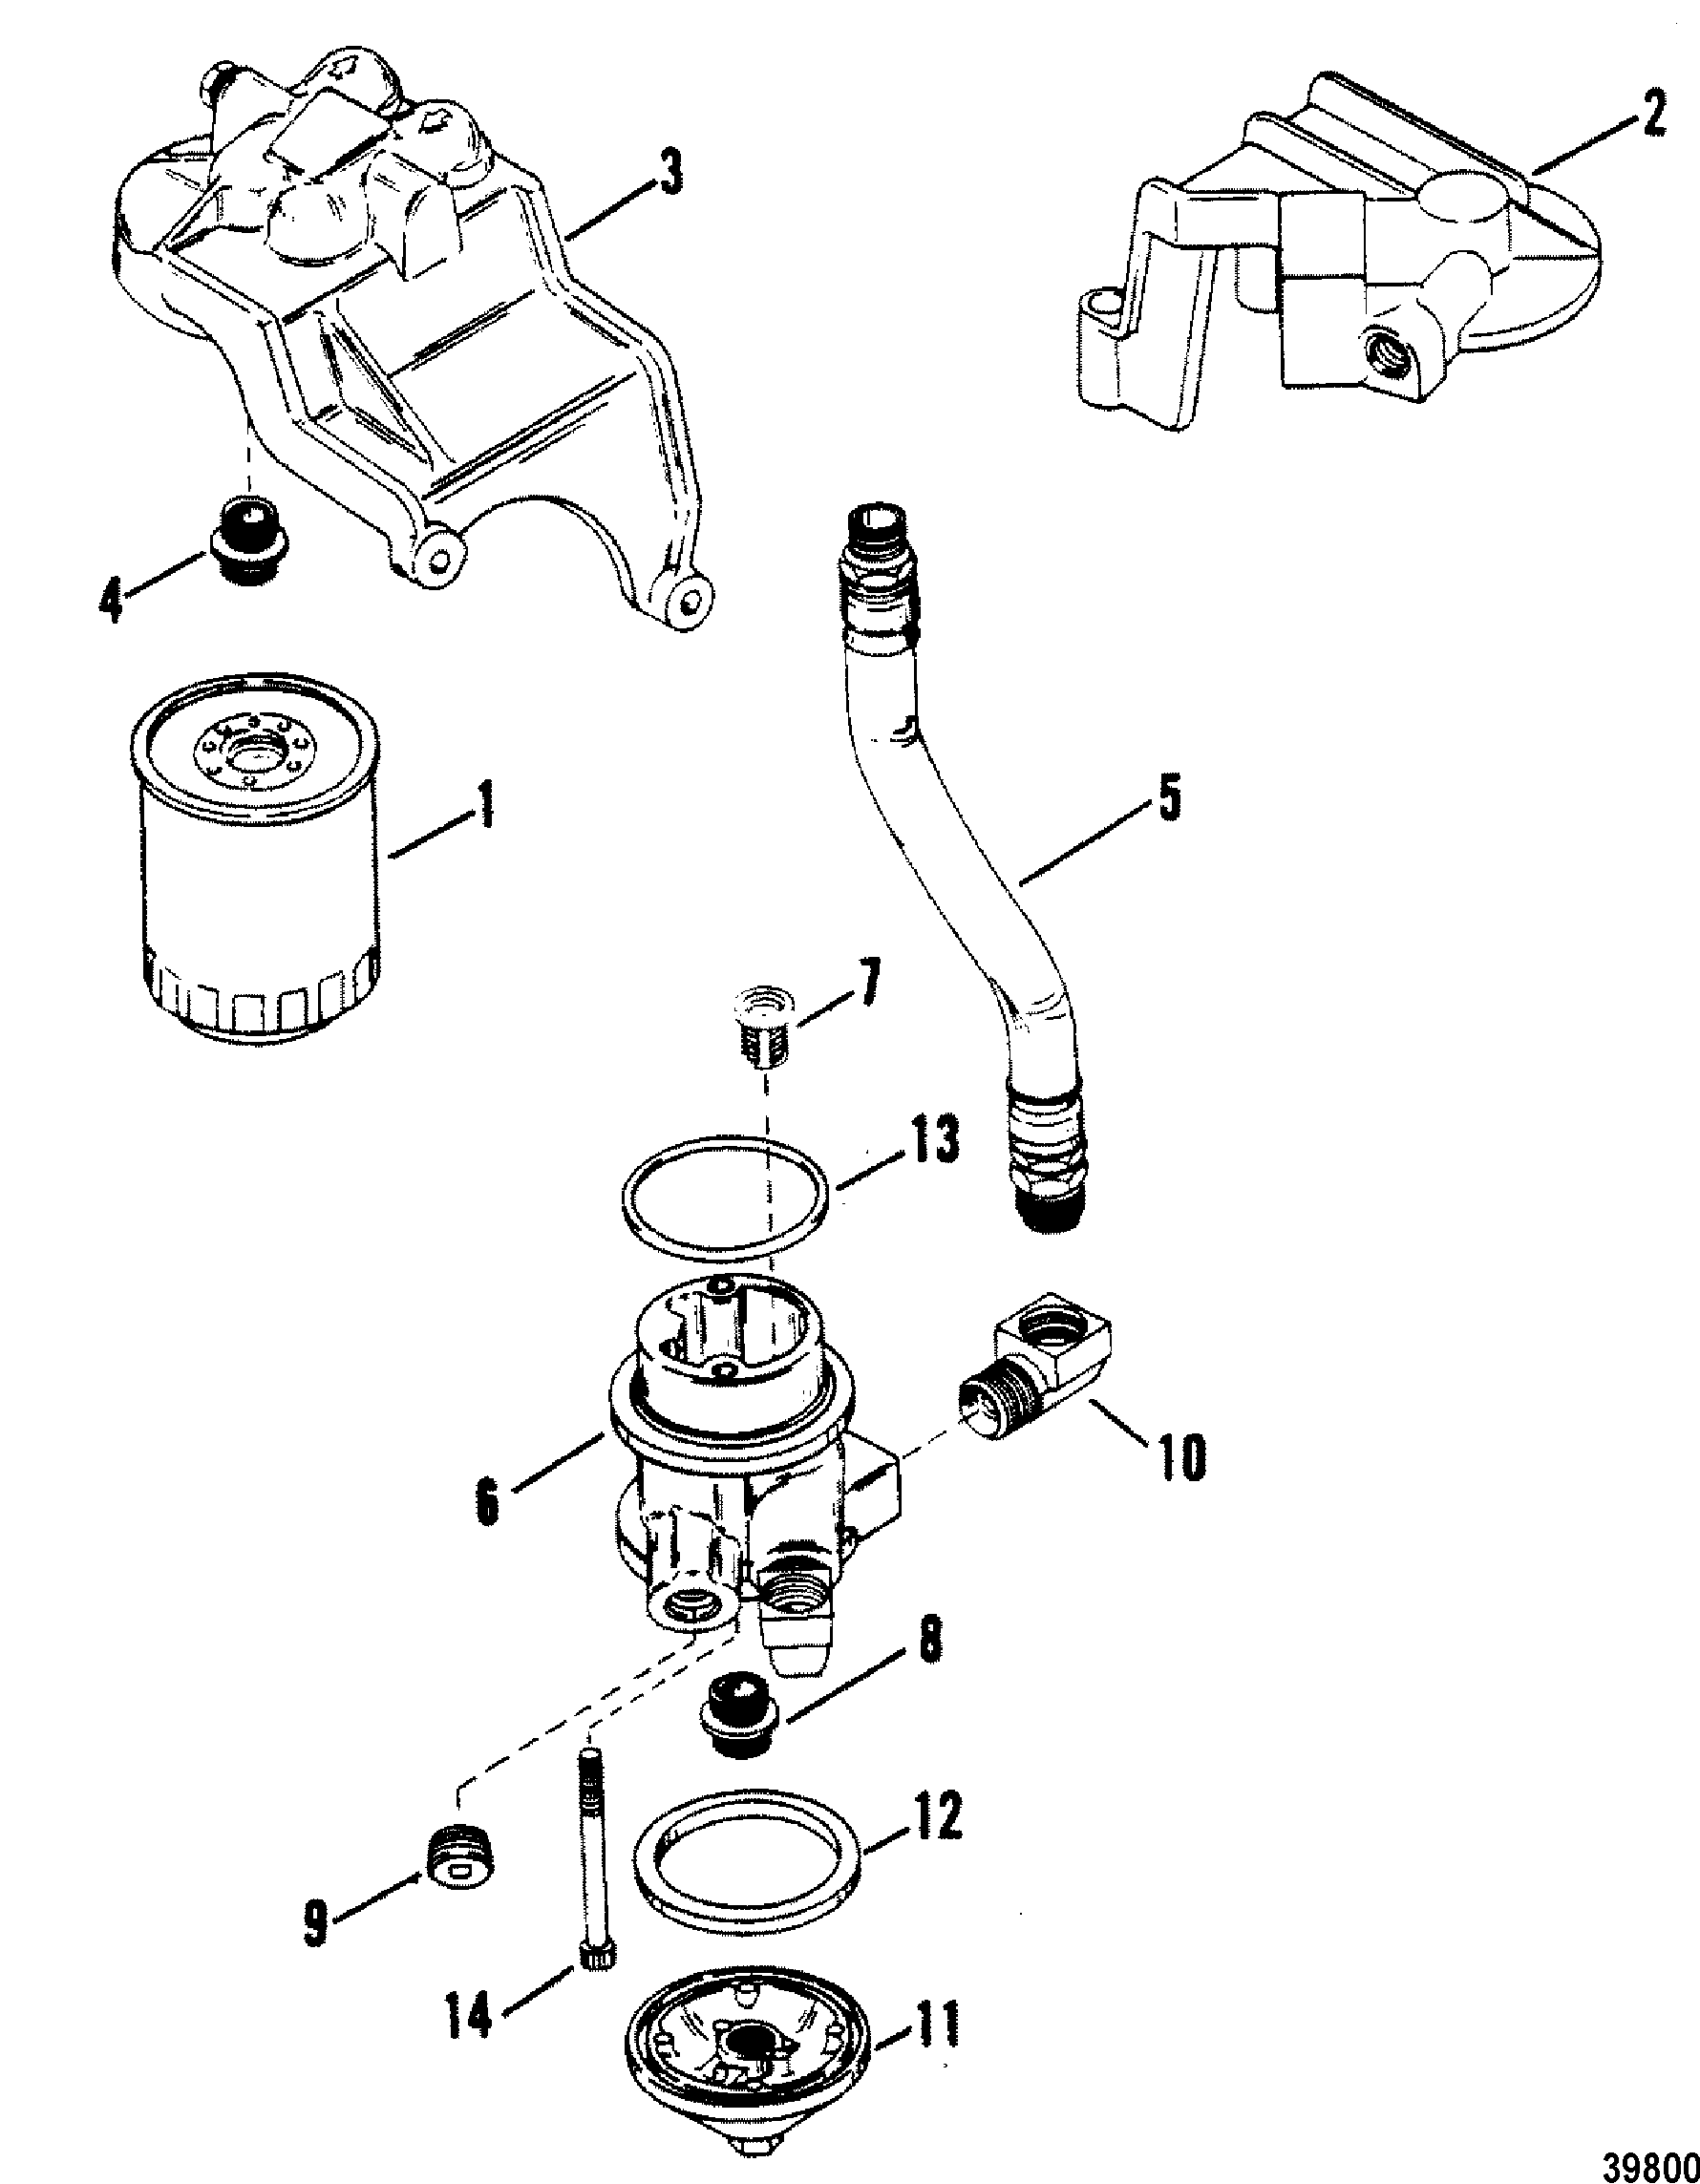 Oil Filter And Adapter For Mercruiser Mie 230 Hp 260 H P